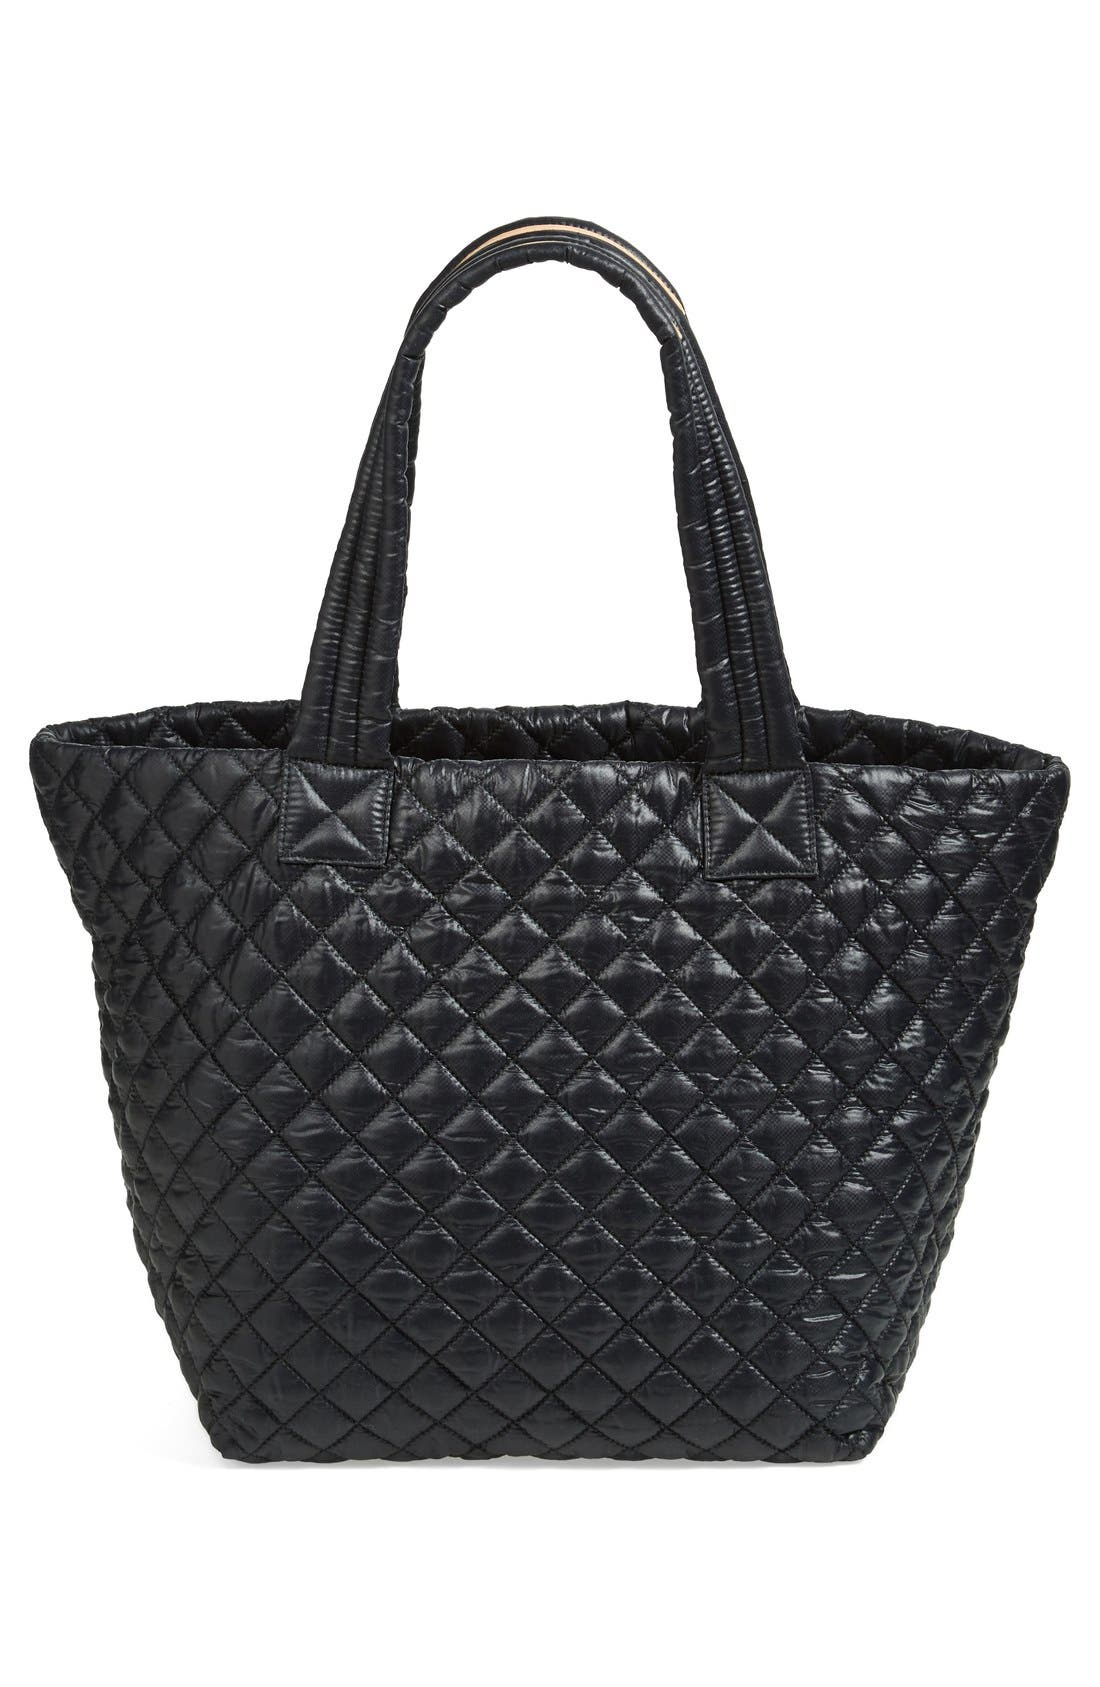 Medium Metro Tote,                             Alternate thumbnail 8, color,                             BLACK